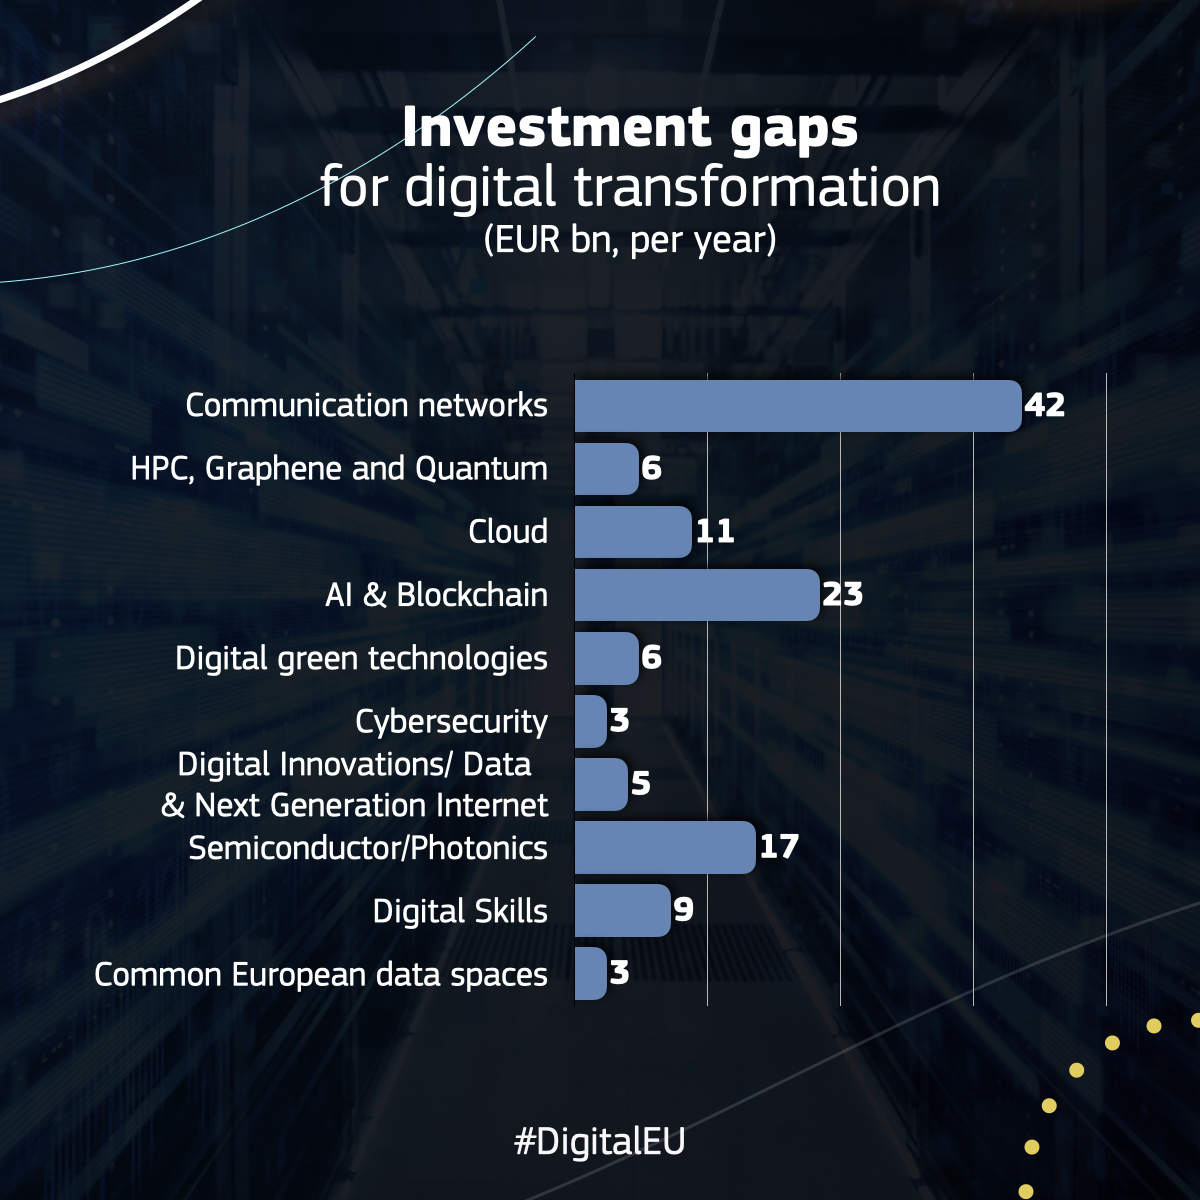 📉 Under-investing in digital in the #EU 🇪🇺 is a big problem. The @EU_Commission found that the #EU needs €125 billion of investment a year to deliver the #DigitalTransformation ➡️ https://t.co/eDWPmMNNcS  20% of the #NextGenerationEU will be dedicated to #DigitalEU! https://t.co/hwCGx2OmFv